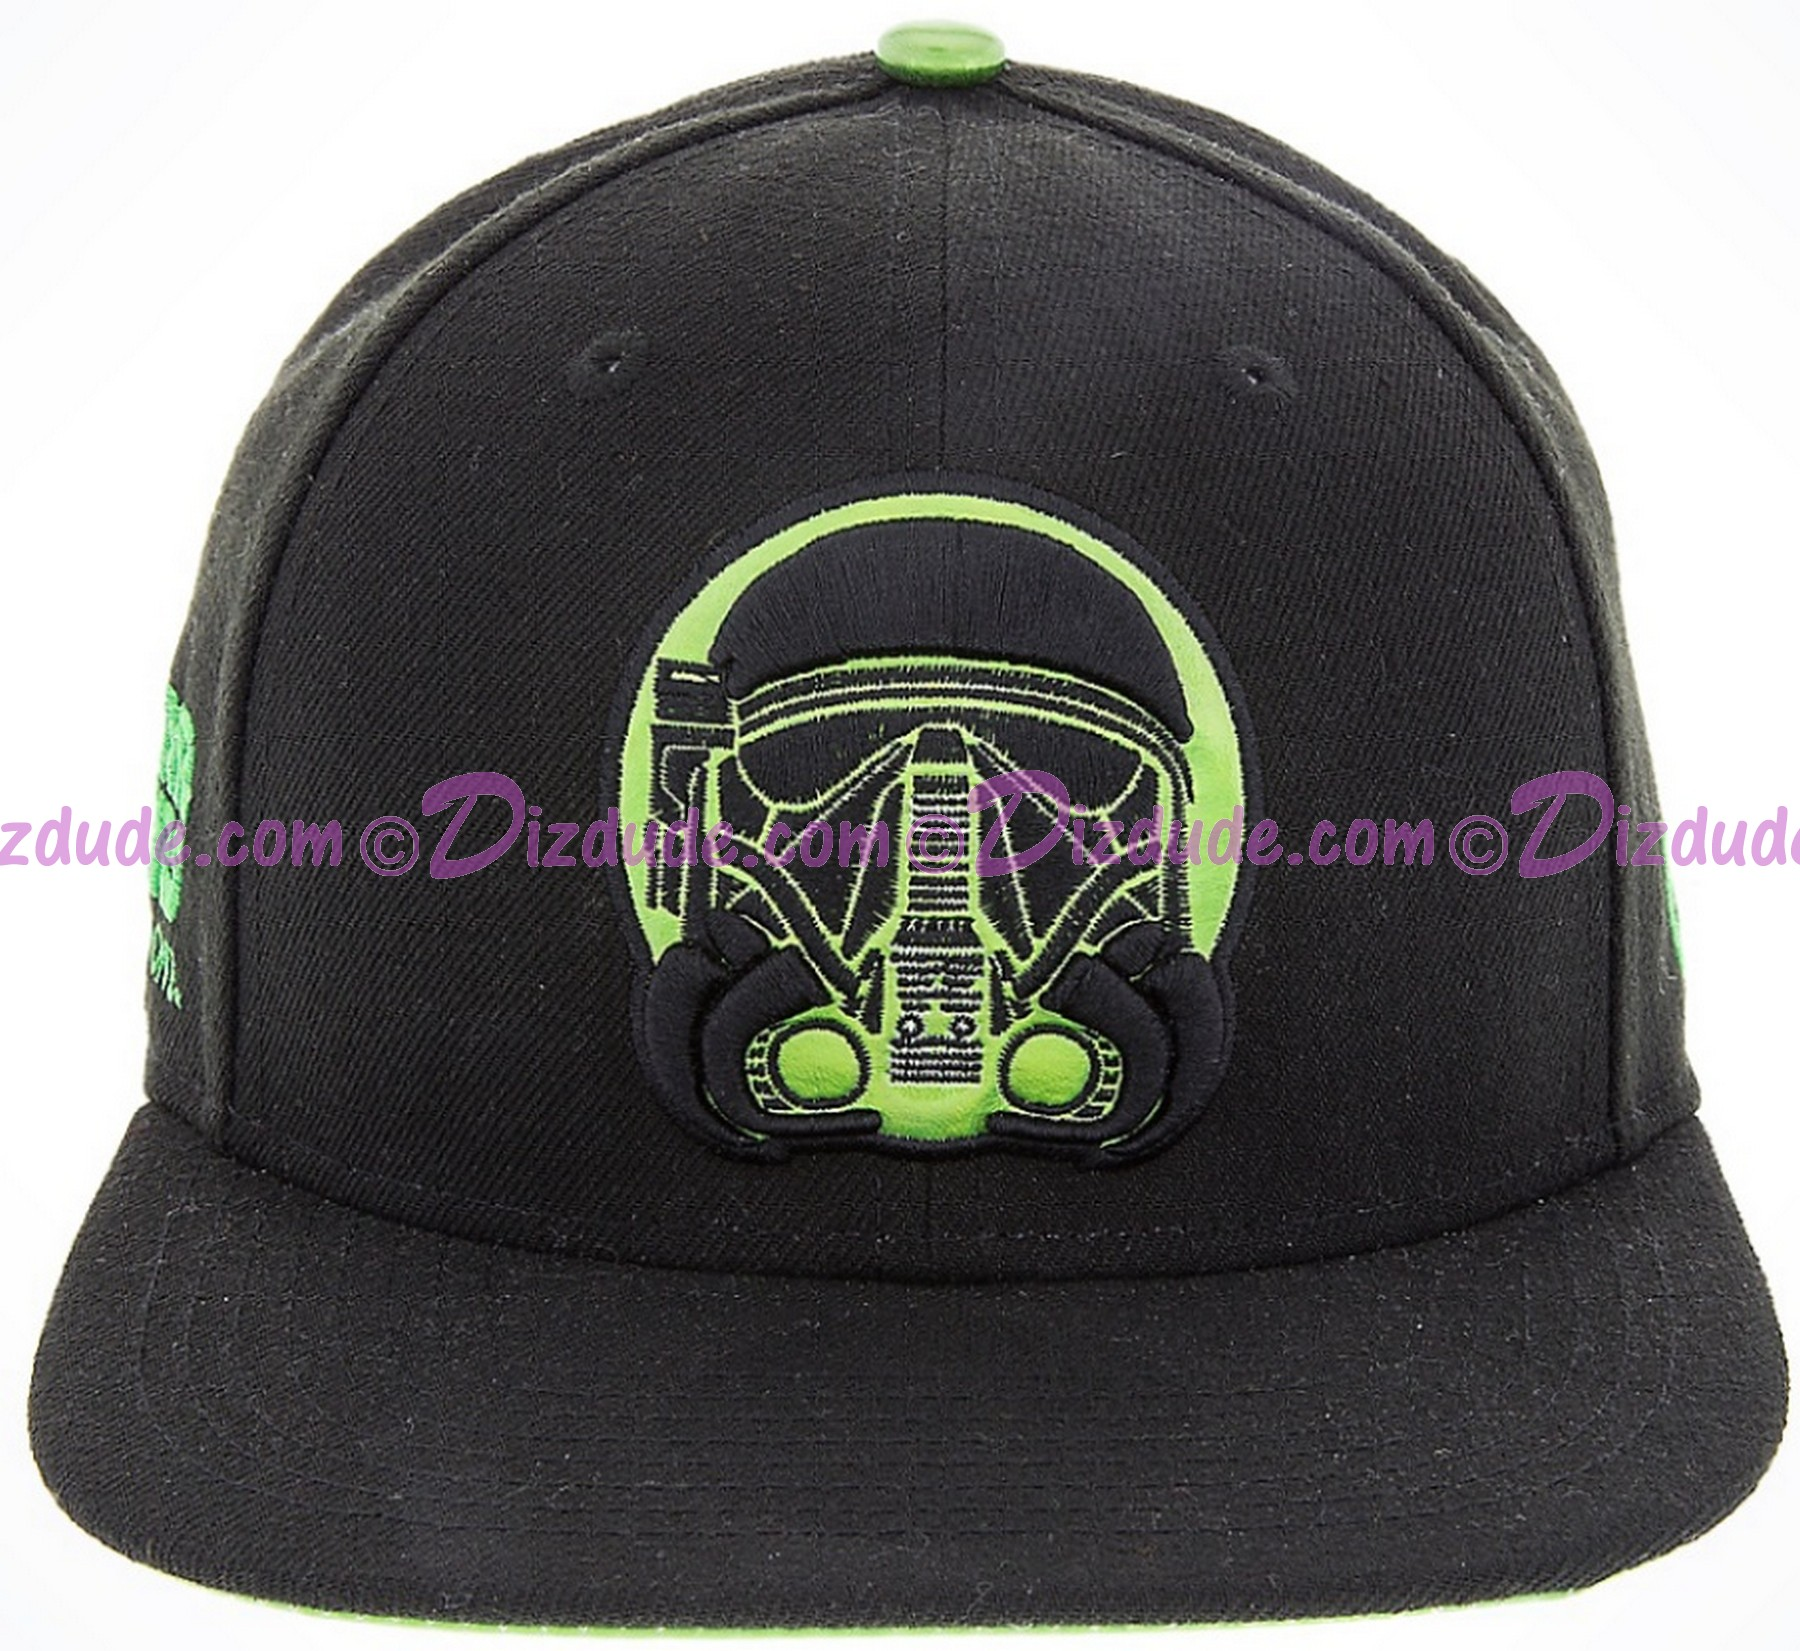 Rogue One Death Trooper Adjustable Youth Baseball Hat - Disney's Star Wars © Dizdude.com